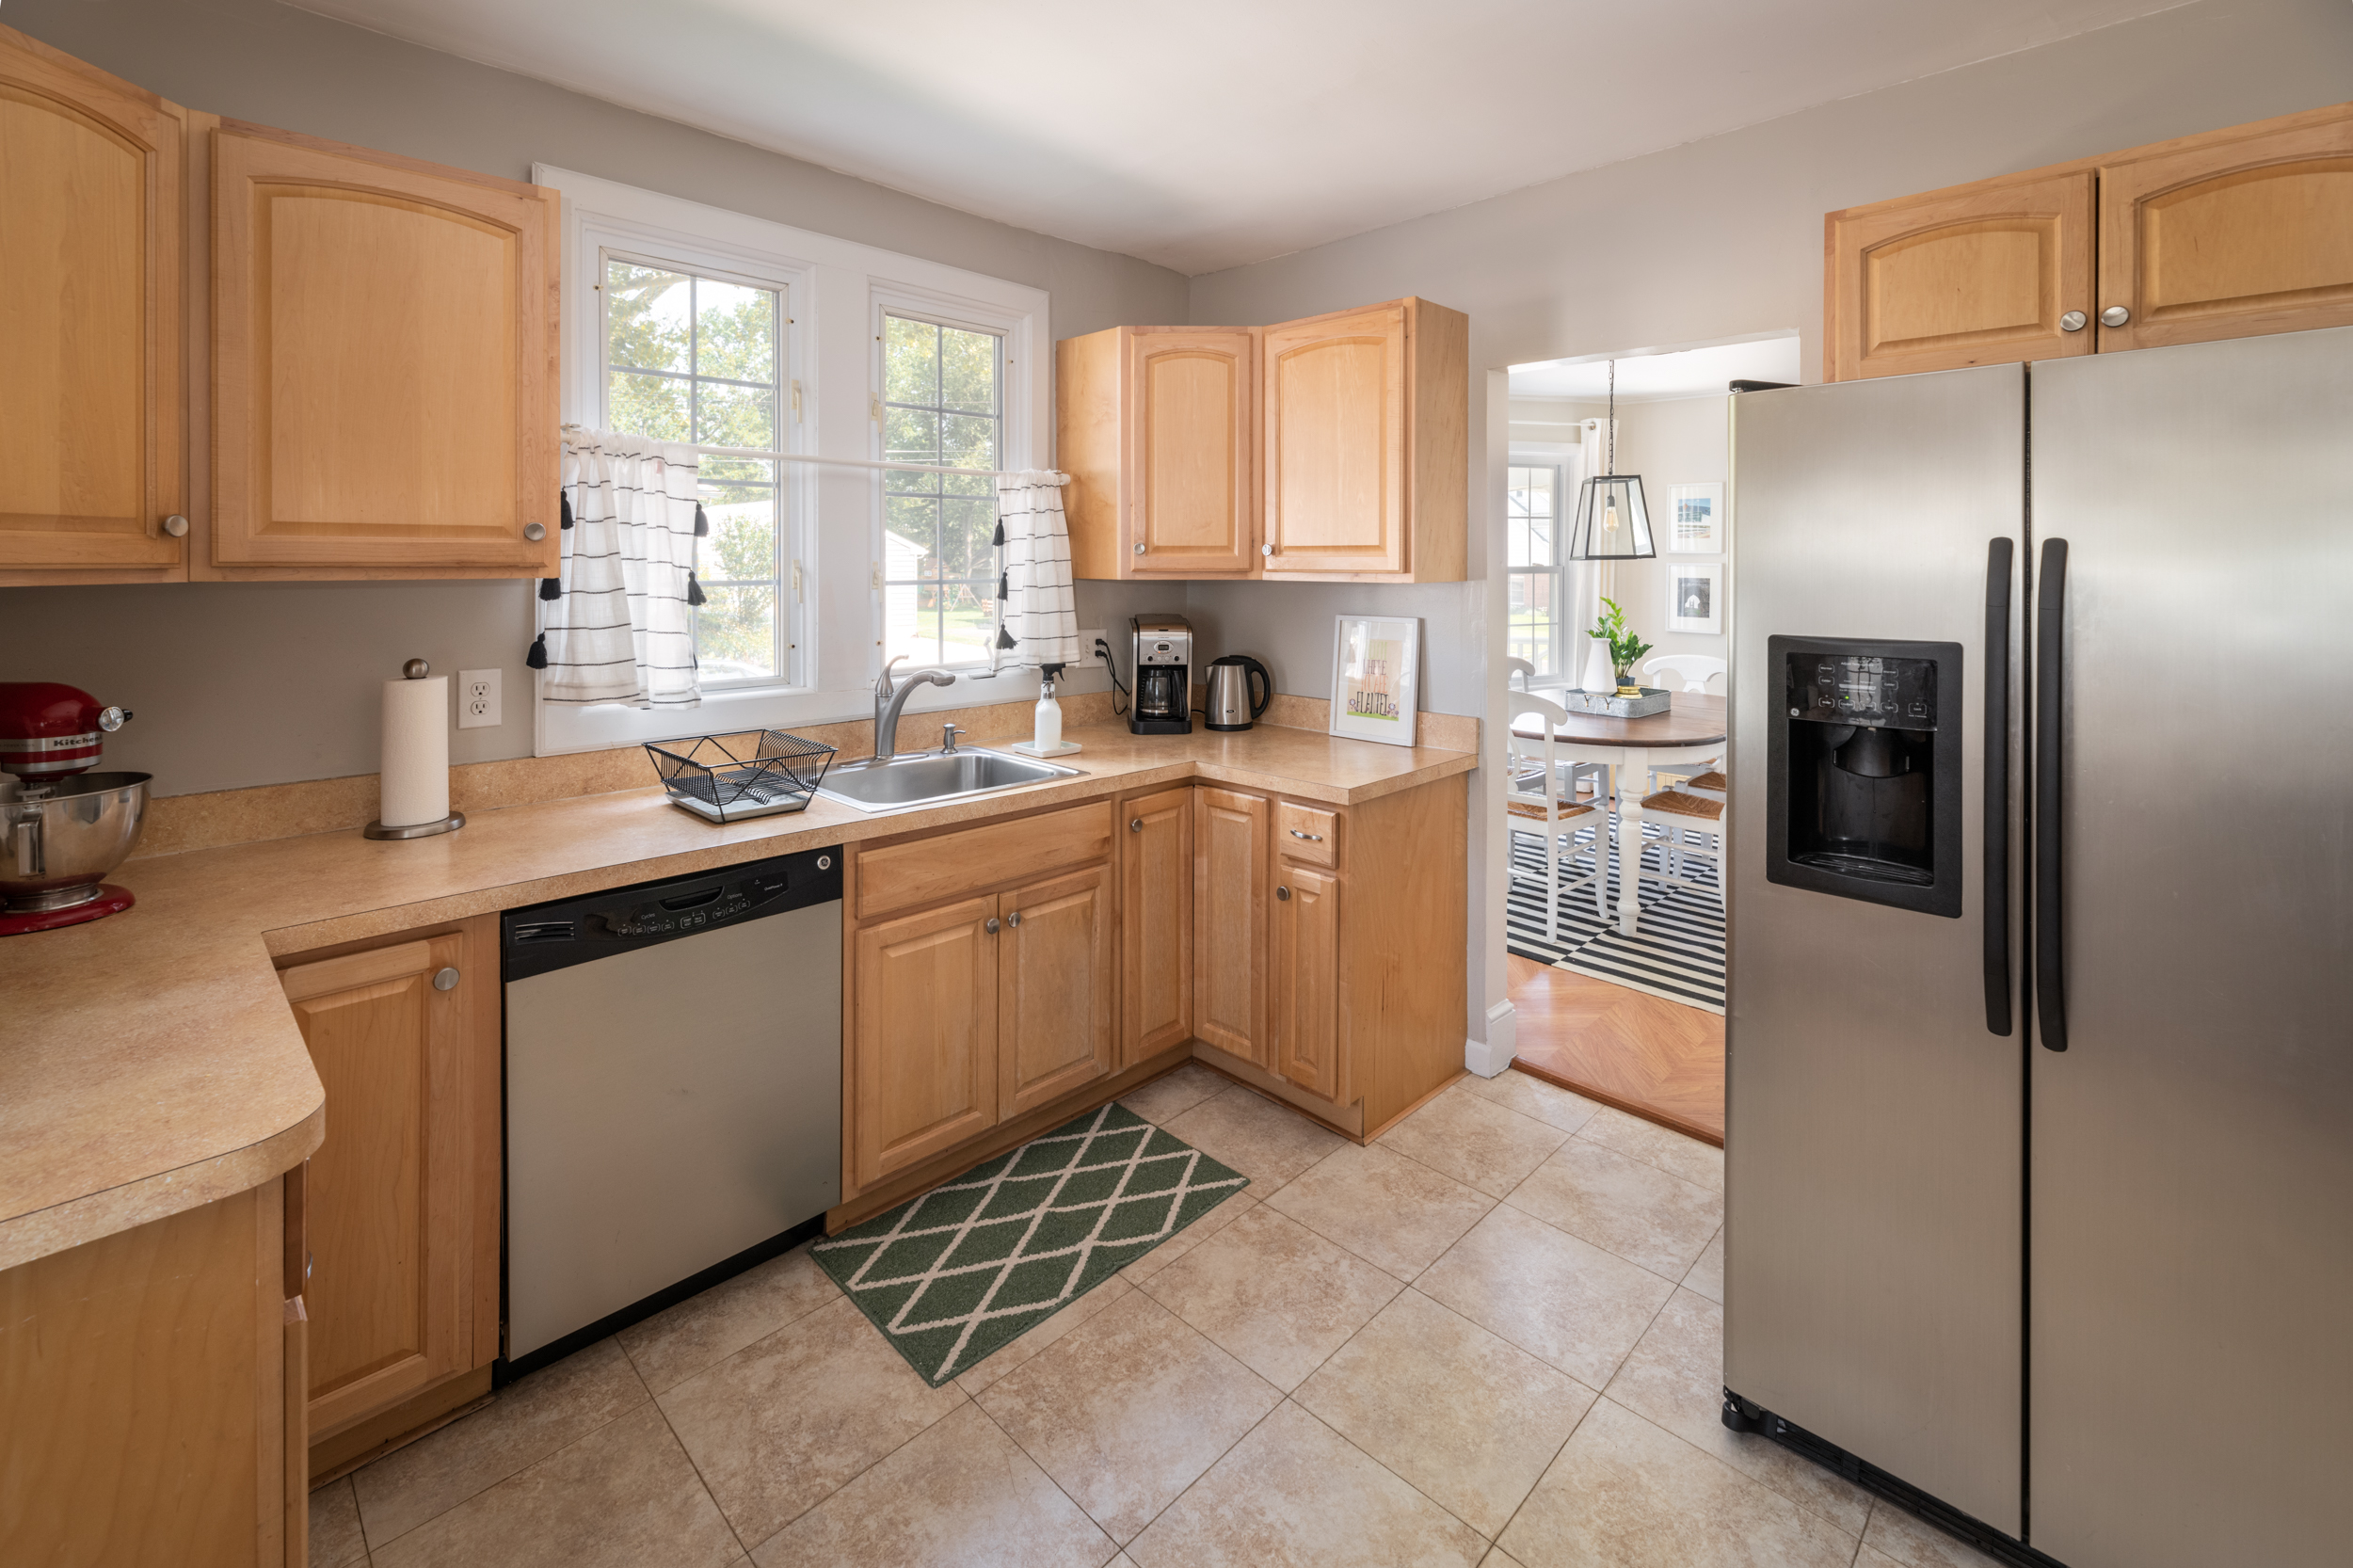 7LakeshoreDr_Kitchen_3.jpg